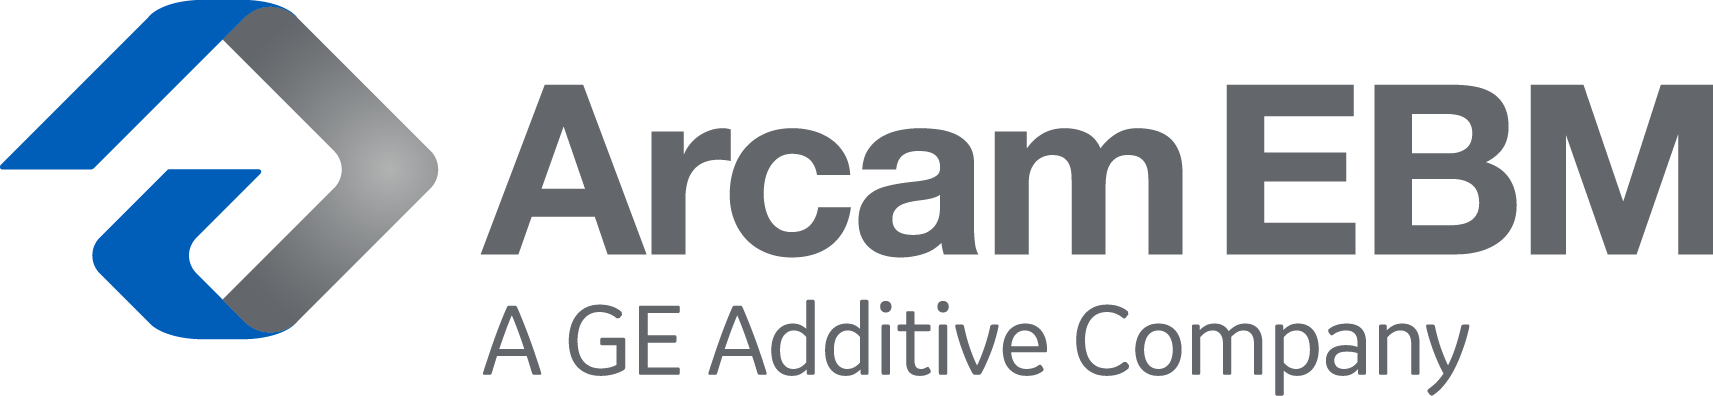 The new Arcam EBM logo. Image via Arcam